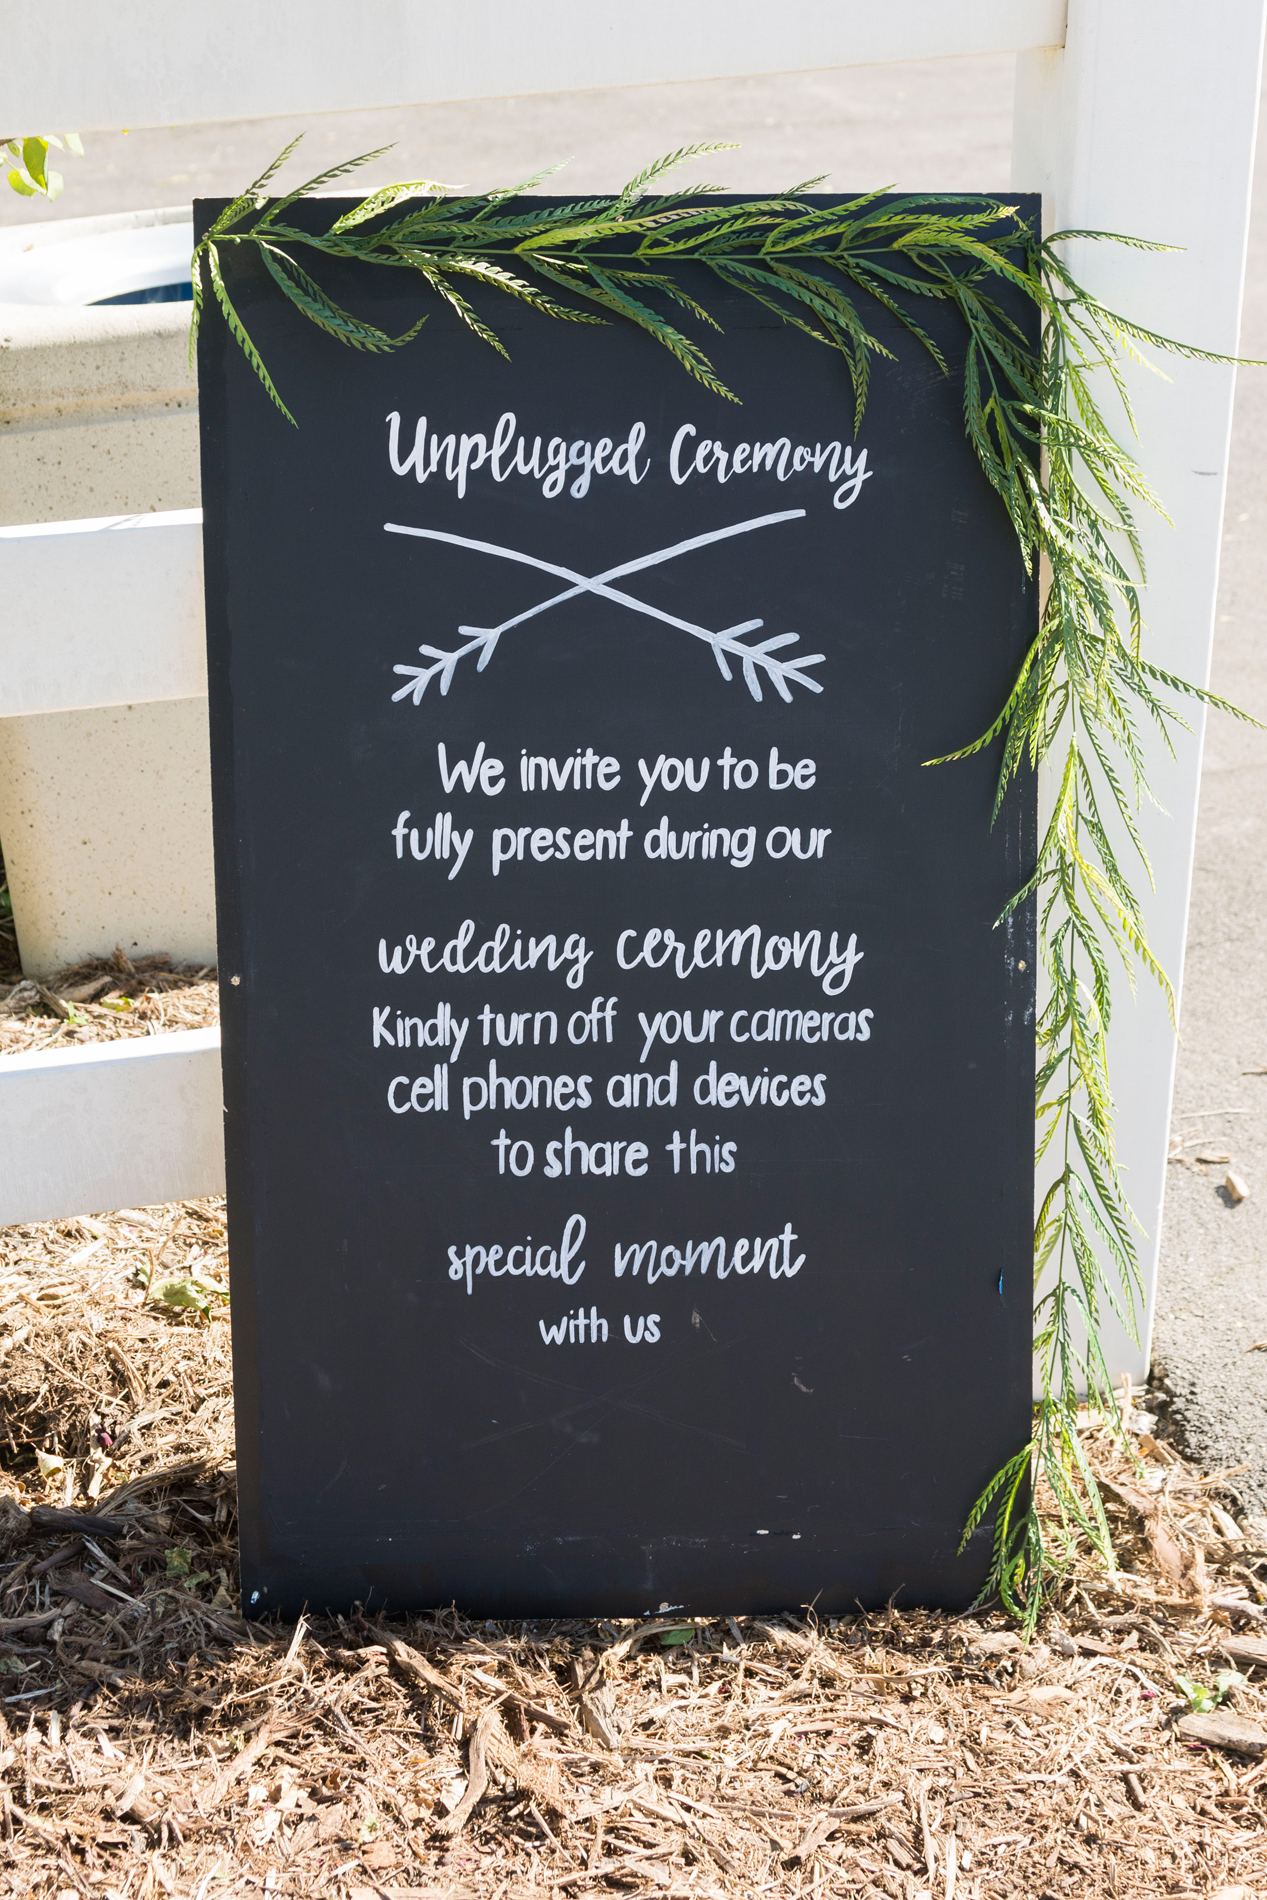 Unplugged Wedding Ceremony Sign - A McCoy Equestrian Center Wedding - Peterson Design & Photography